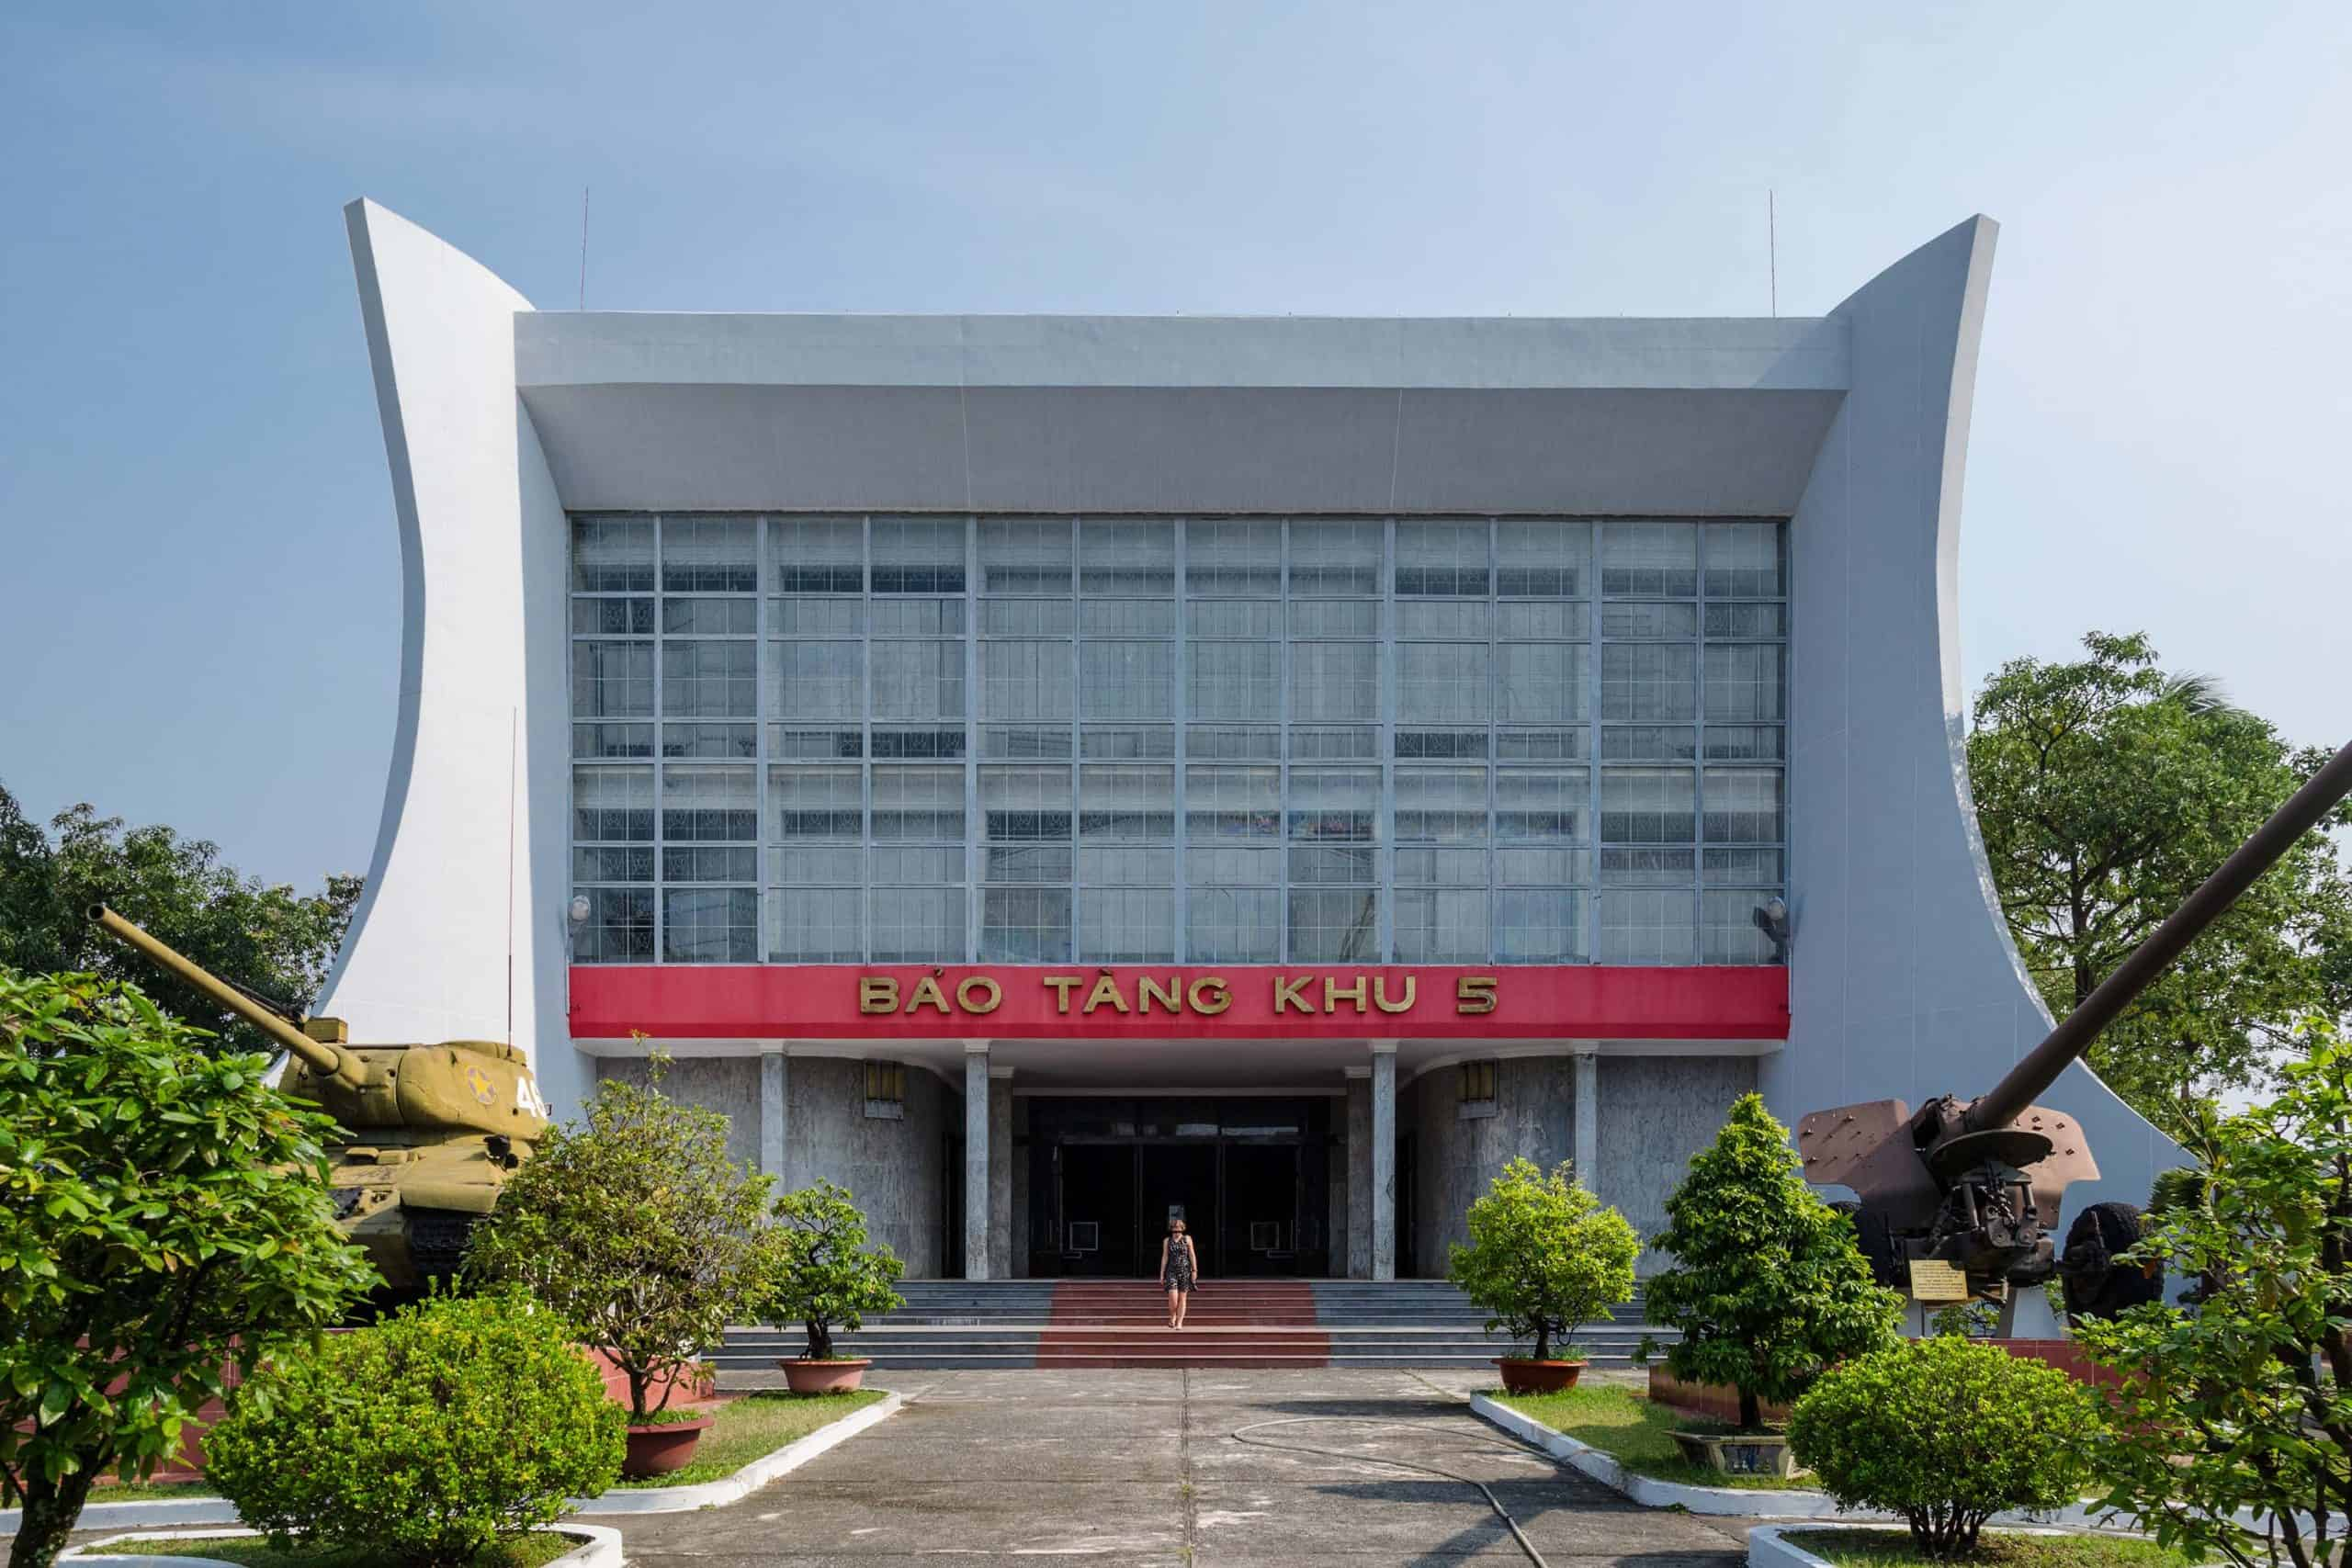 Overview of Ho Chi Minh museum in Da Nang